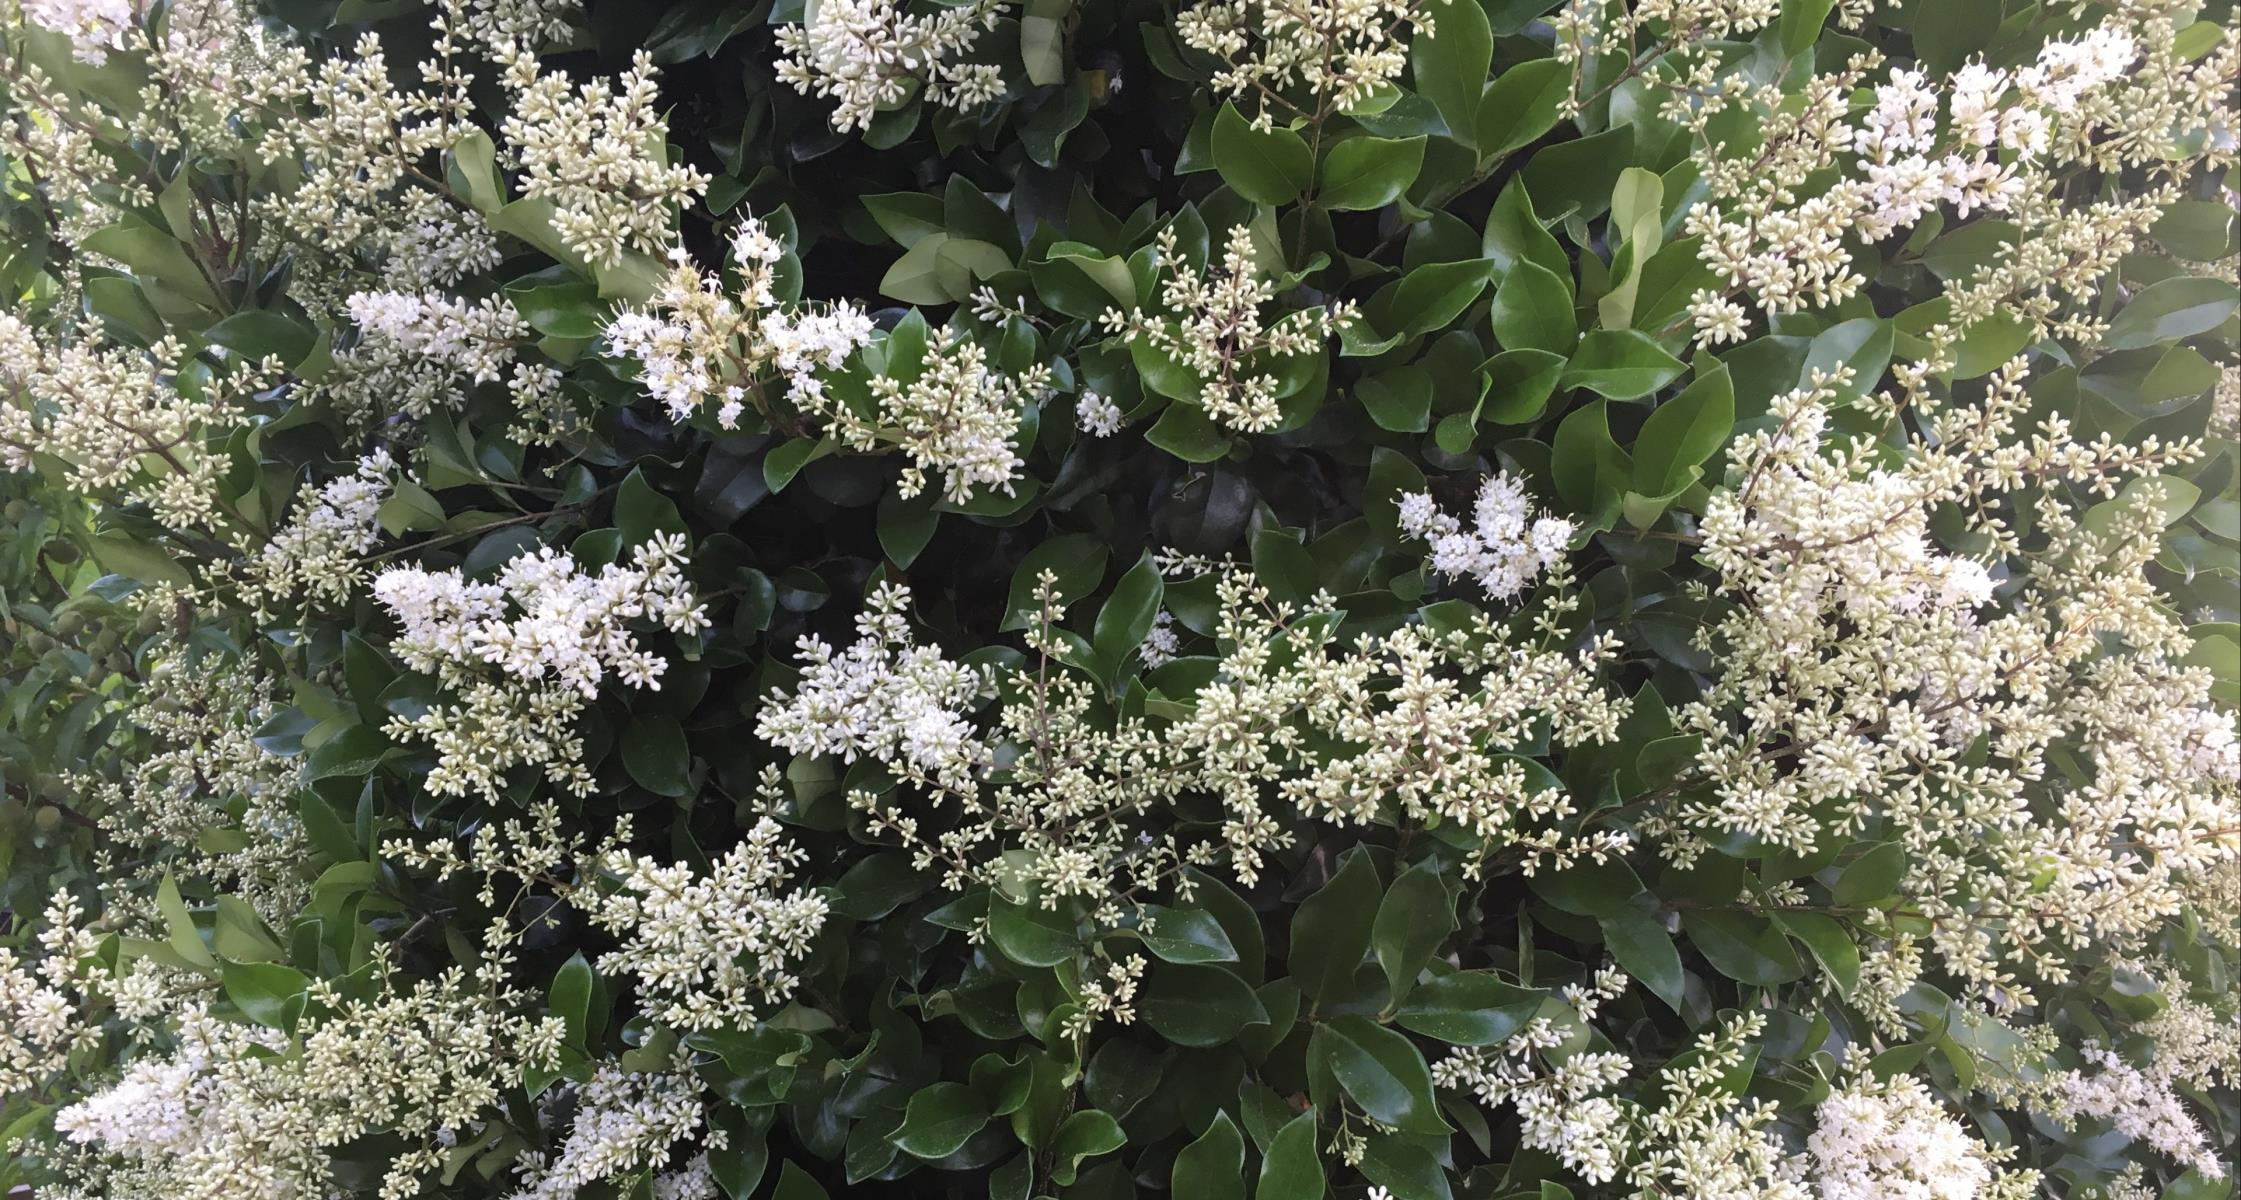 #TeachingTuesday: Ligustrum, AKA Japanese Privet